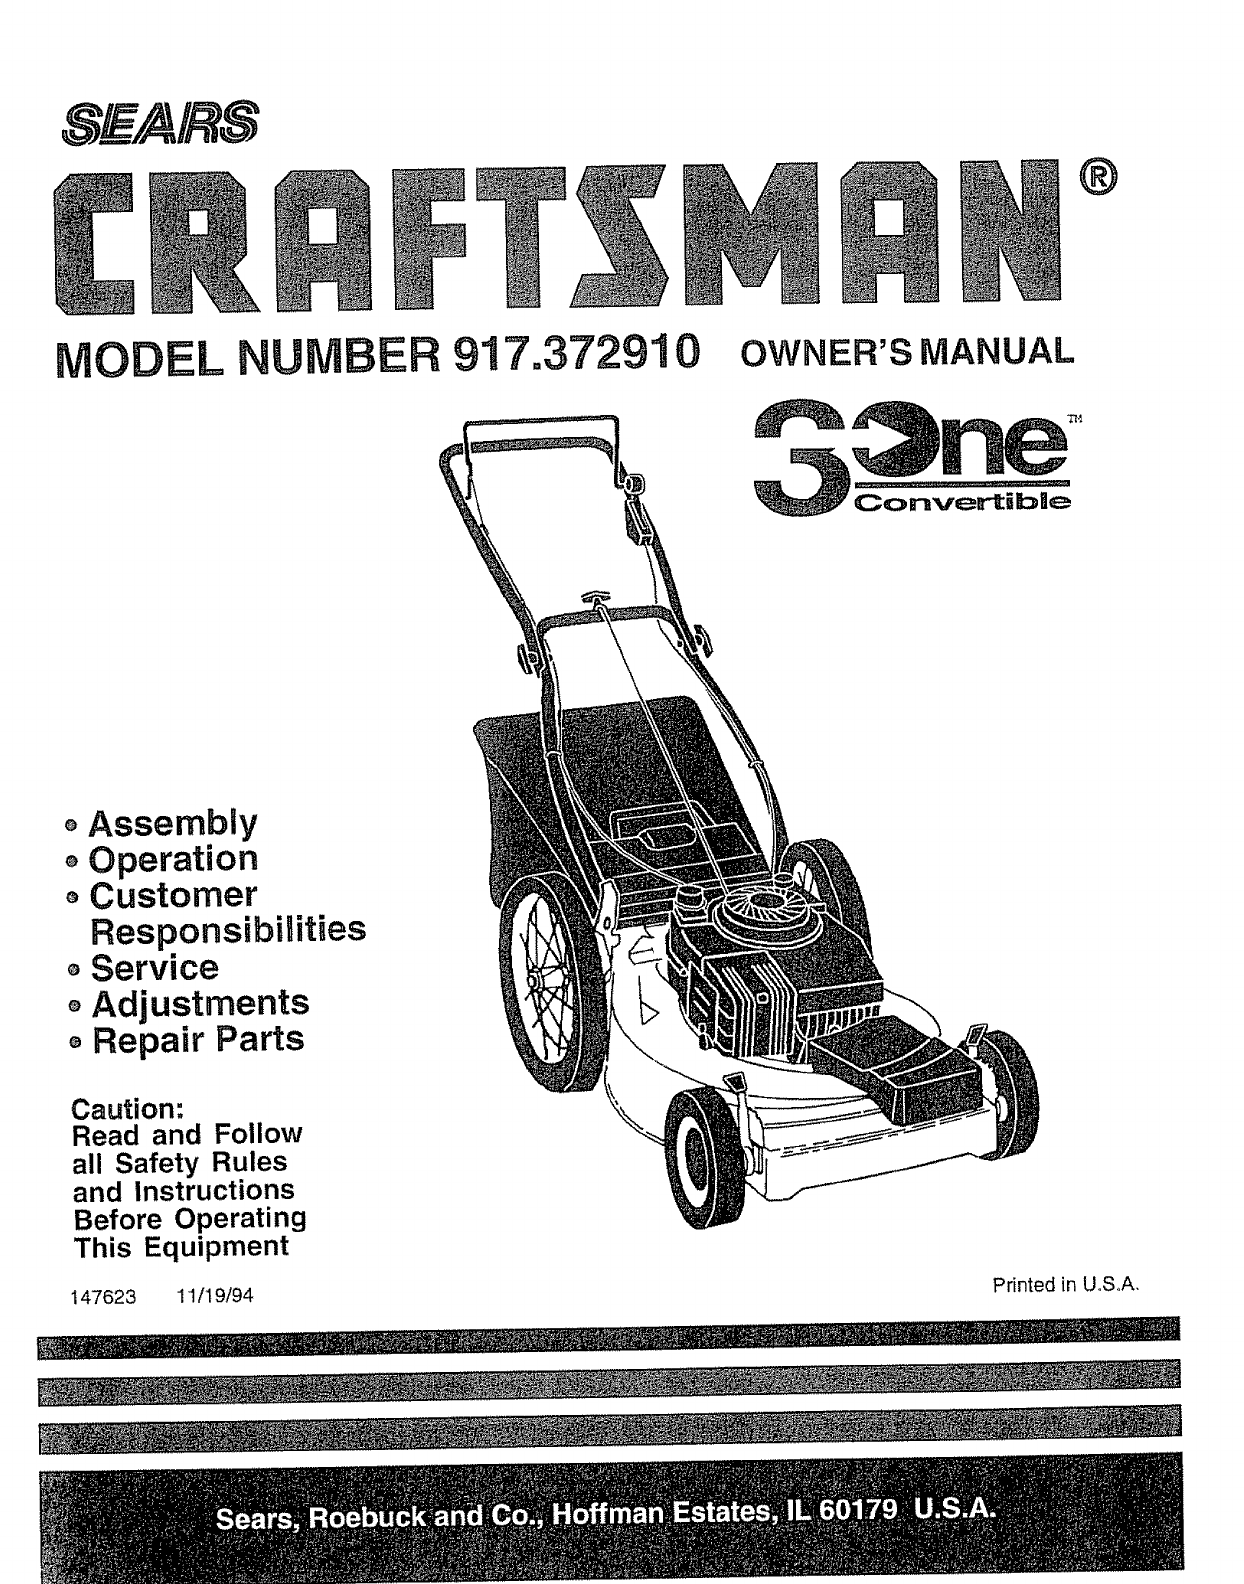 Craftsman 917372910 User Manual Lawn Mower Manuals And Guides L0805085 Engine Diagram Parts List For Walkbehindlawnmower